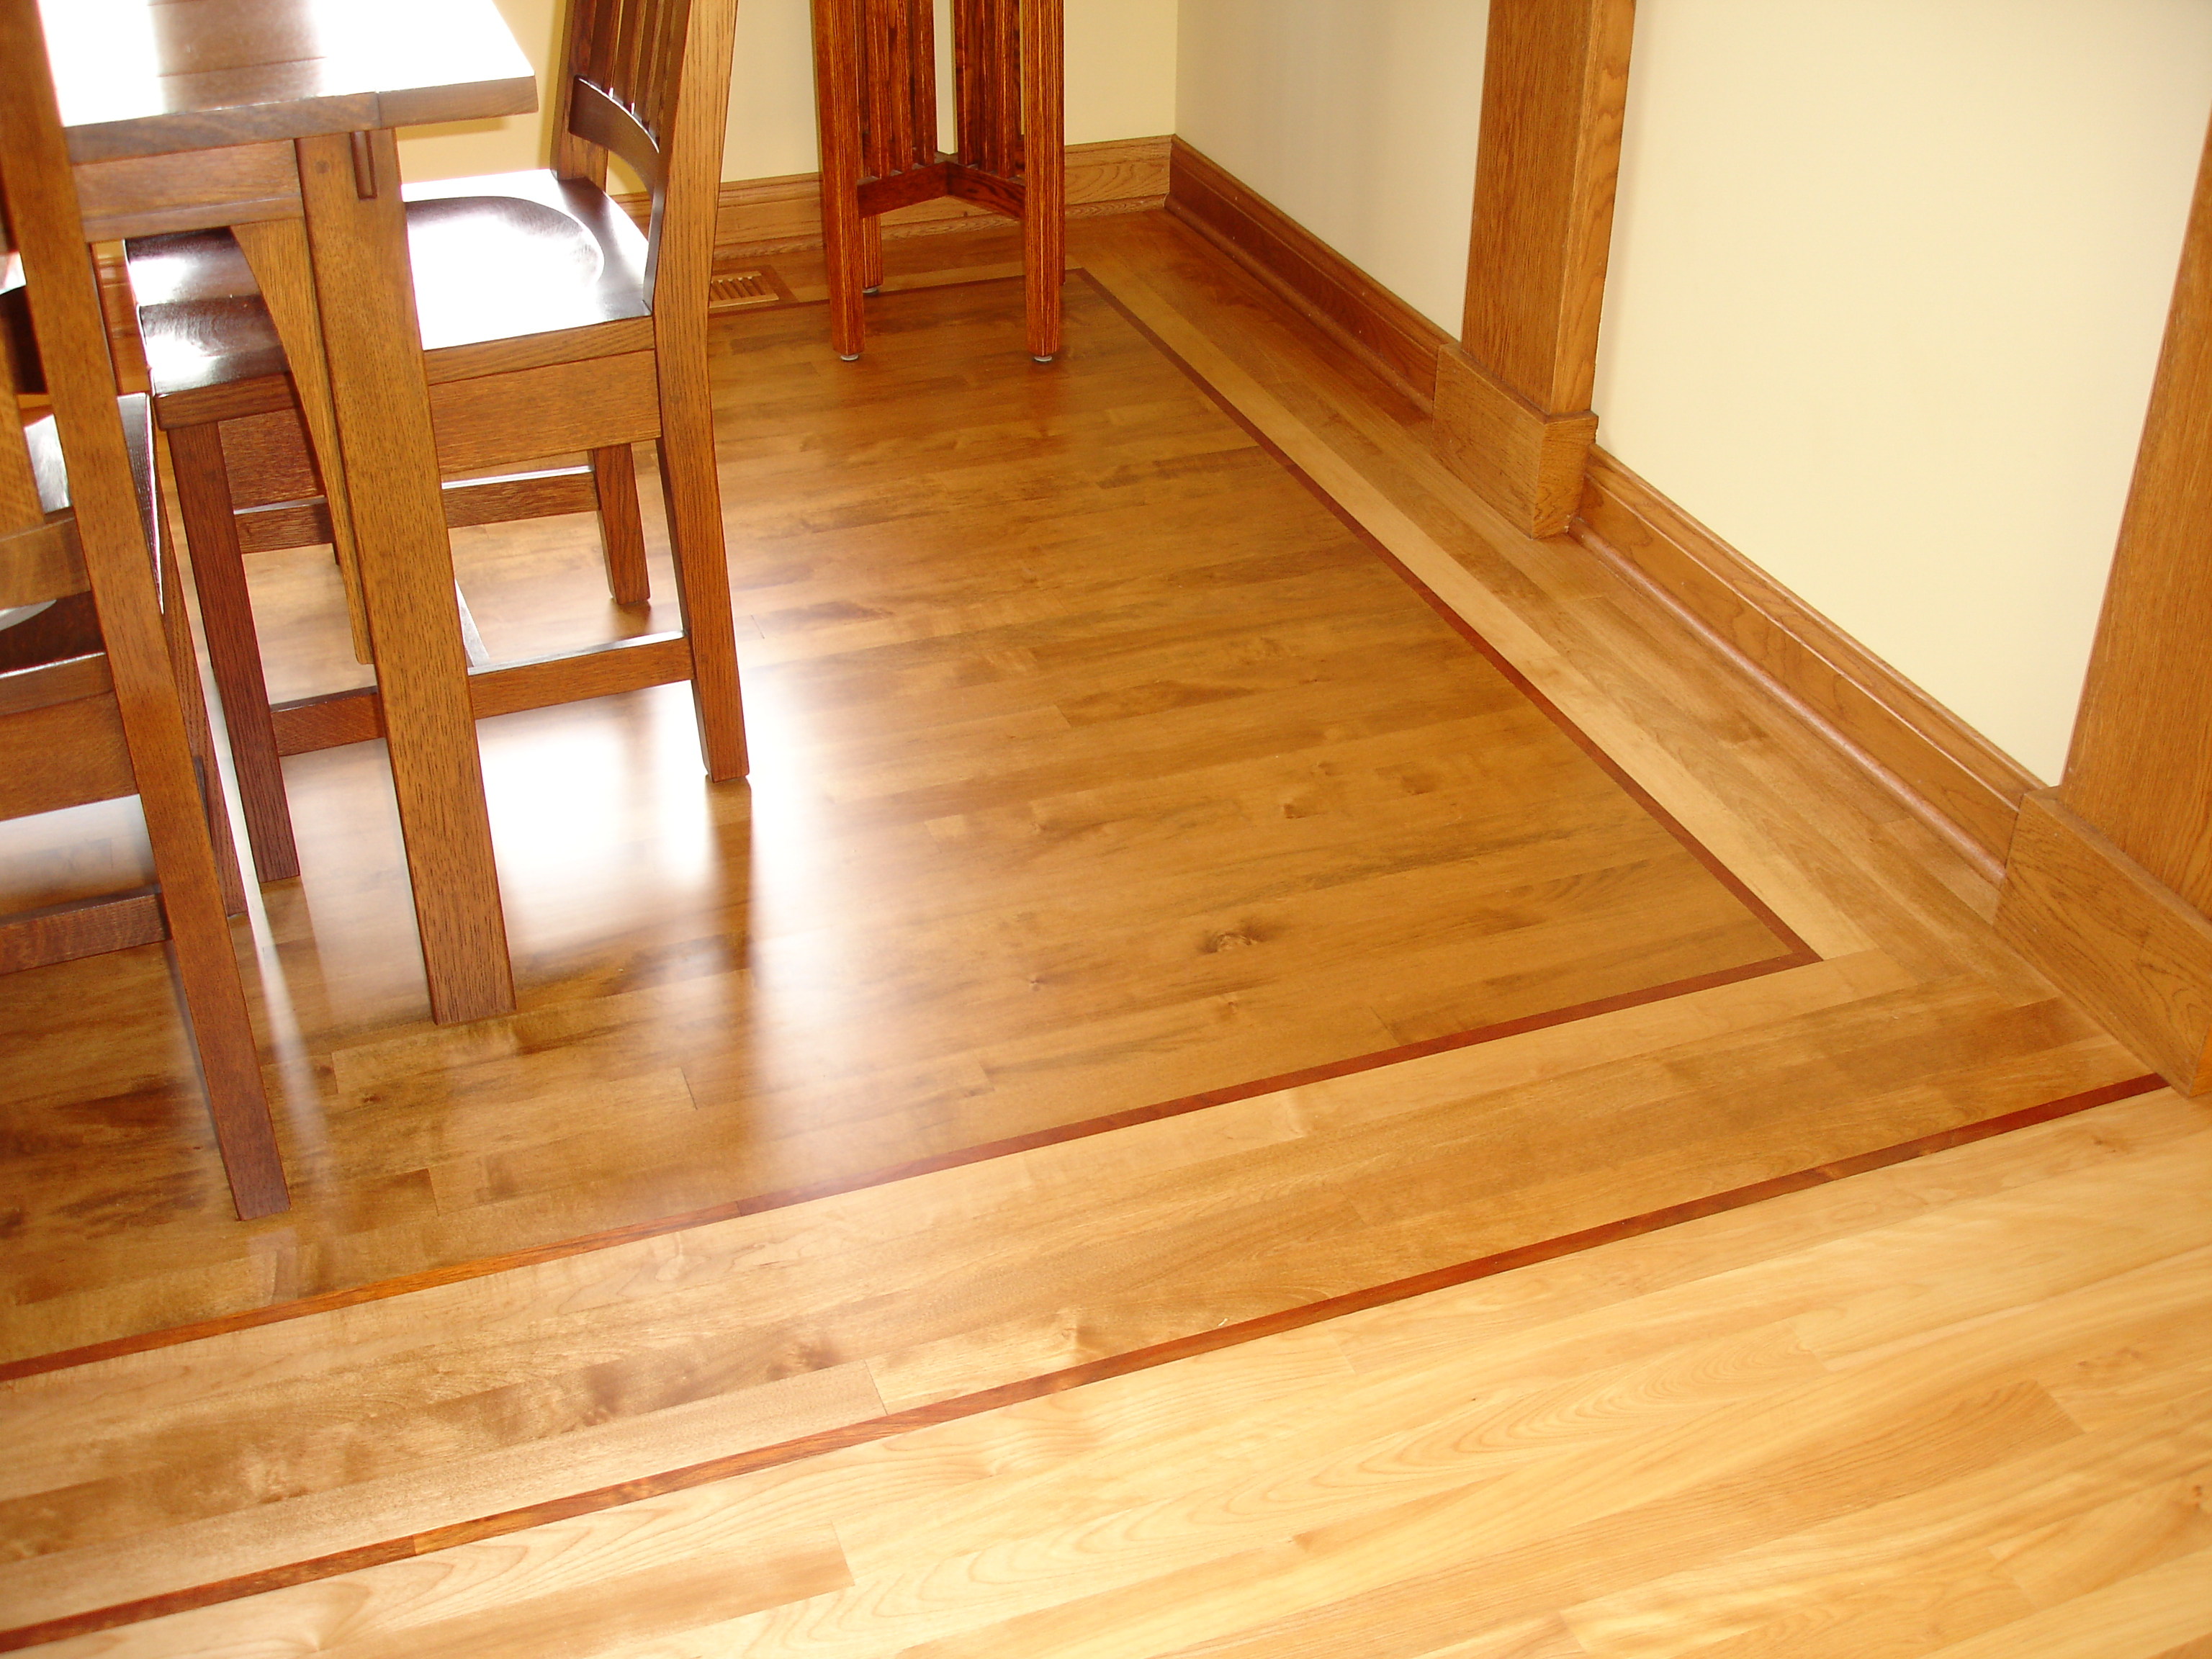 Wisconsin hardwood flooring coupons near me in hudson for Hardwood flooring near me